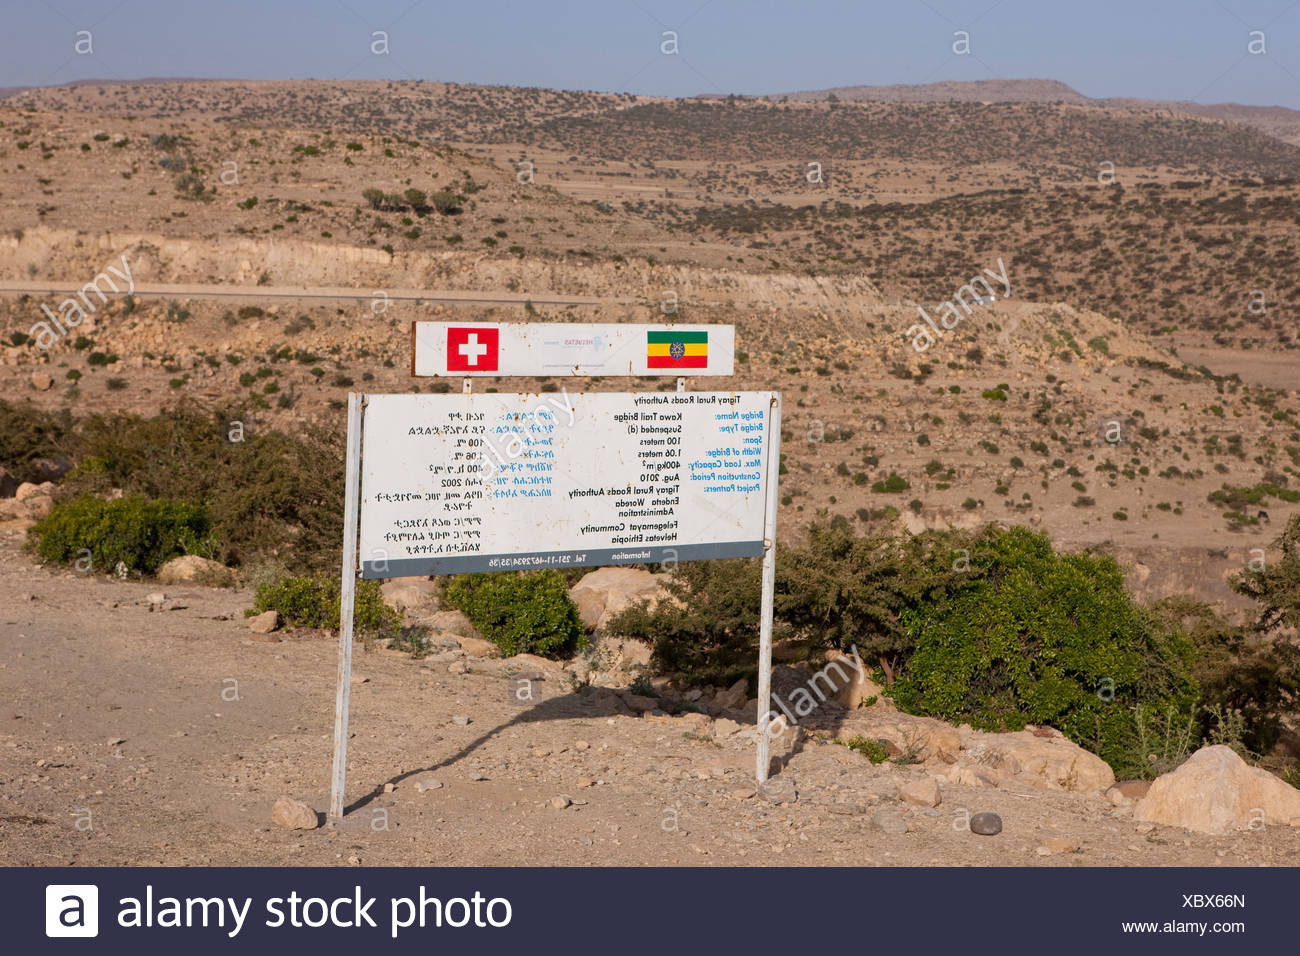 Swiss, Europe, project, Abyssinia highlands, Africa, scenery, landscape, agriculture, bridge, Switzerland, Europe, development a - Stock Image